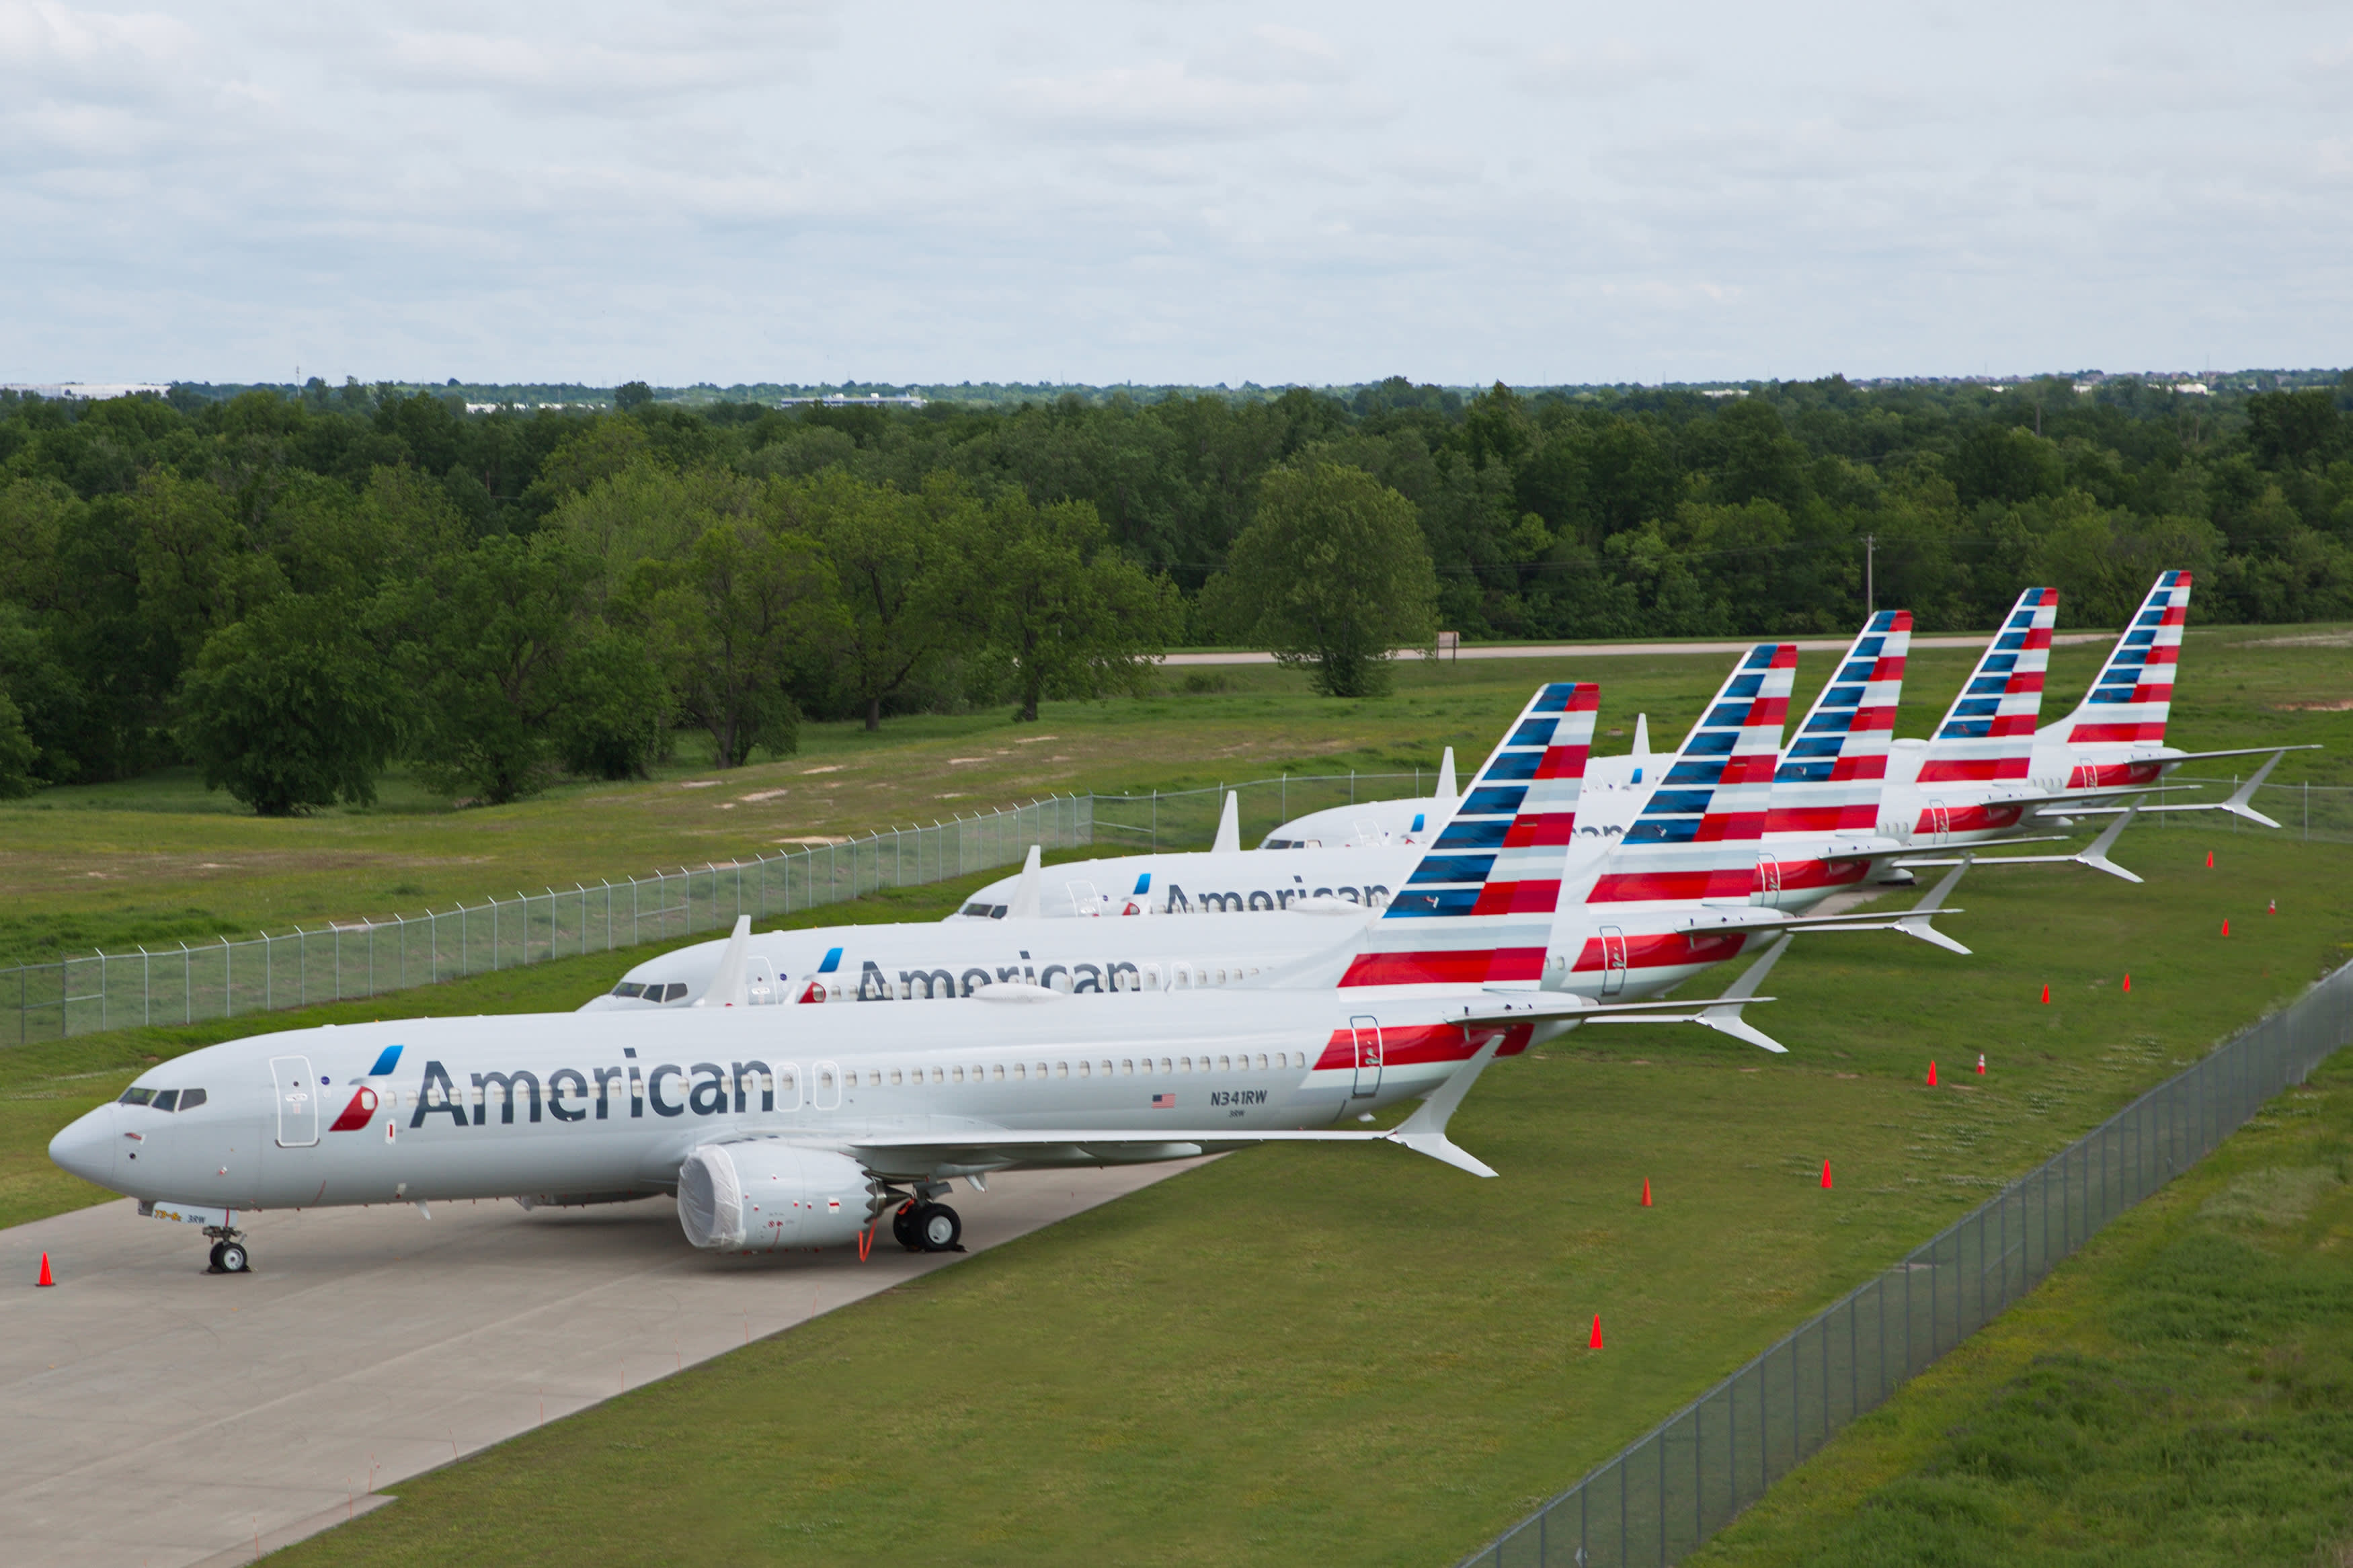 American Airlines extends cancellations from grounded Boeing 737 Max to Sept. 3